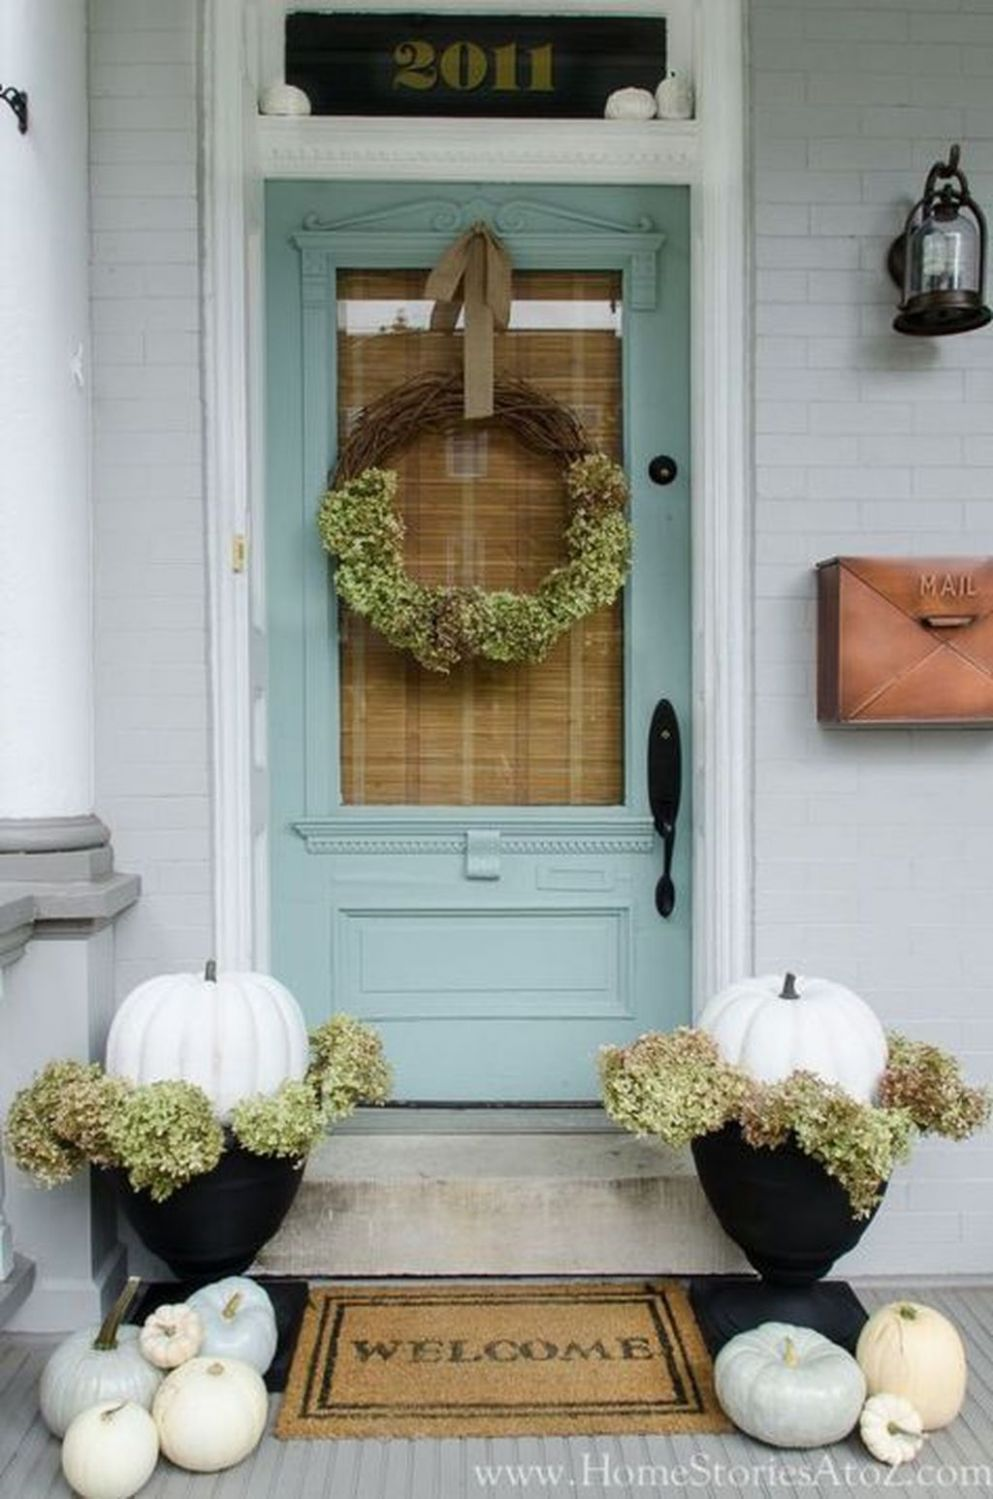 Pin by Chirido Irina on House | Porch decorating, Farmhouse front ...